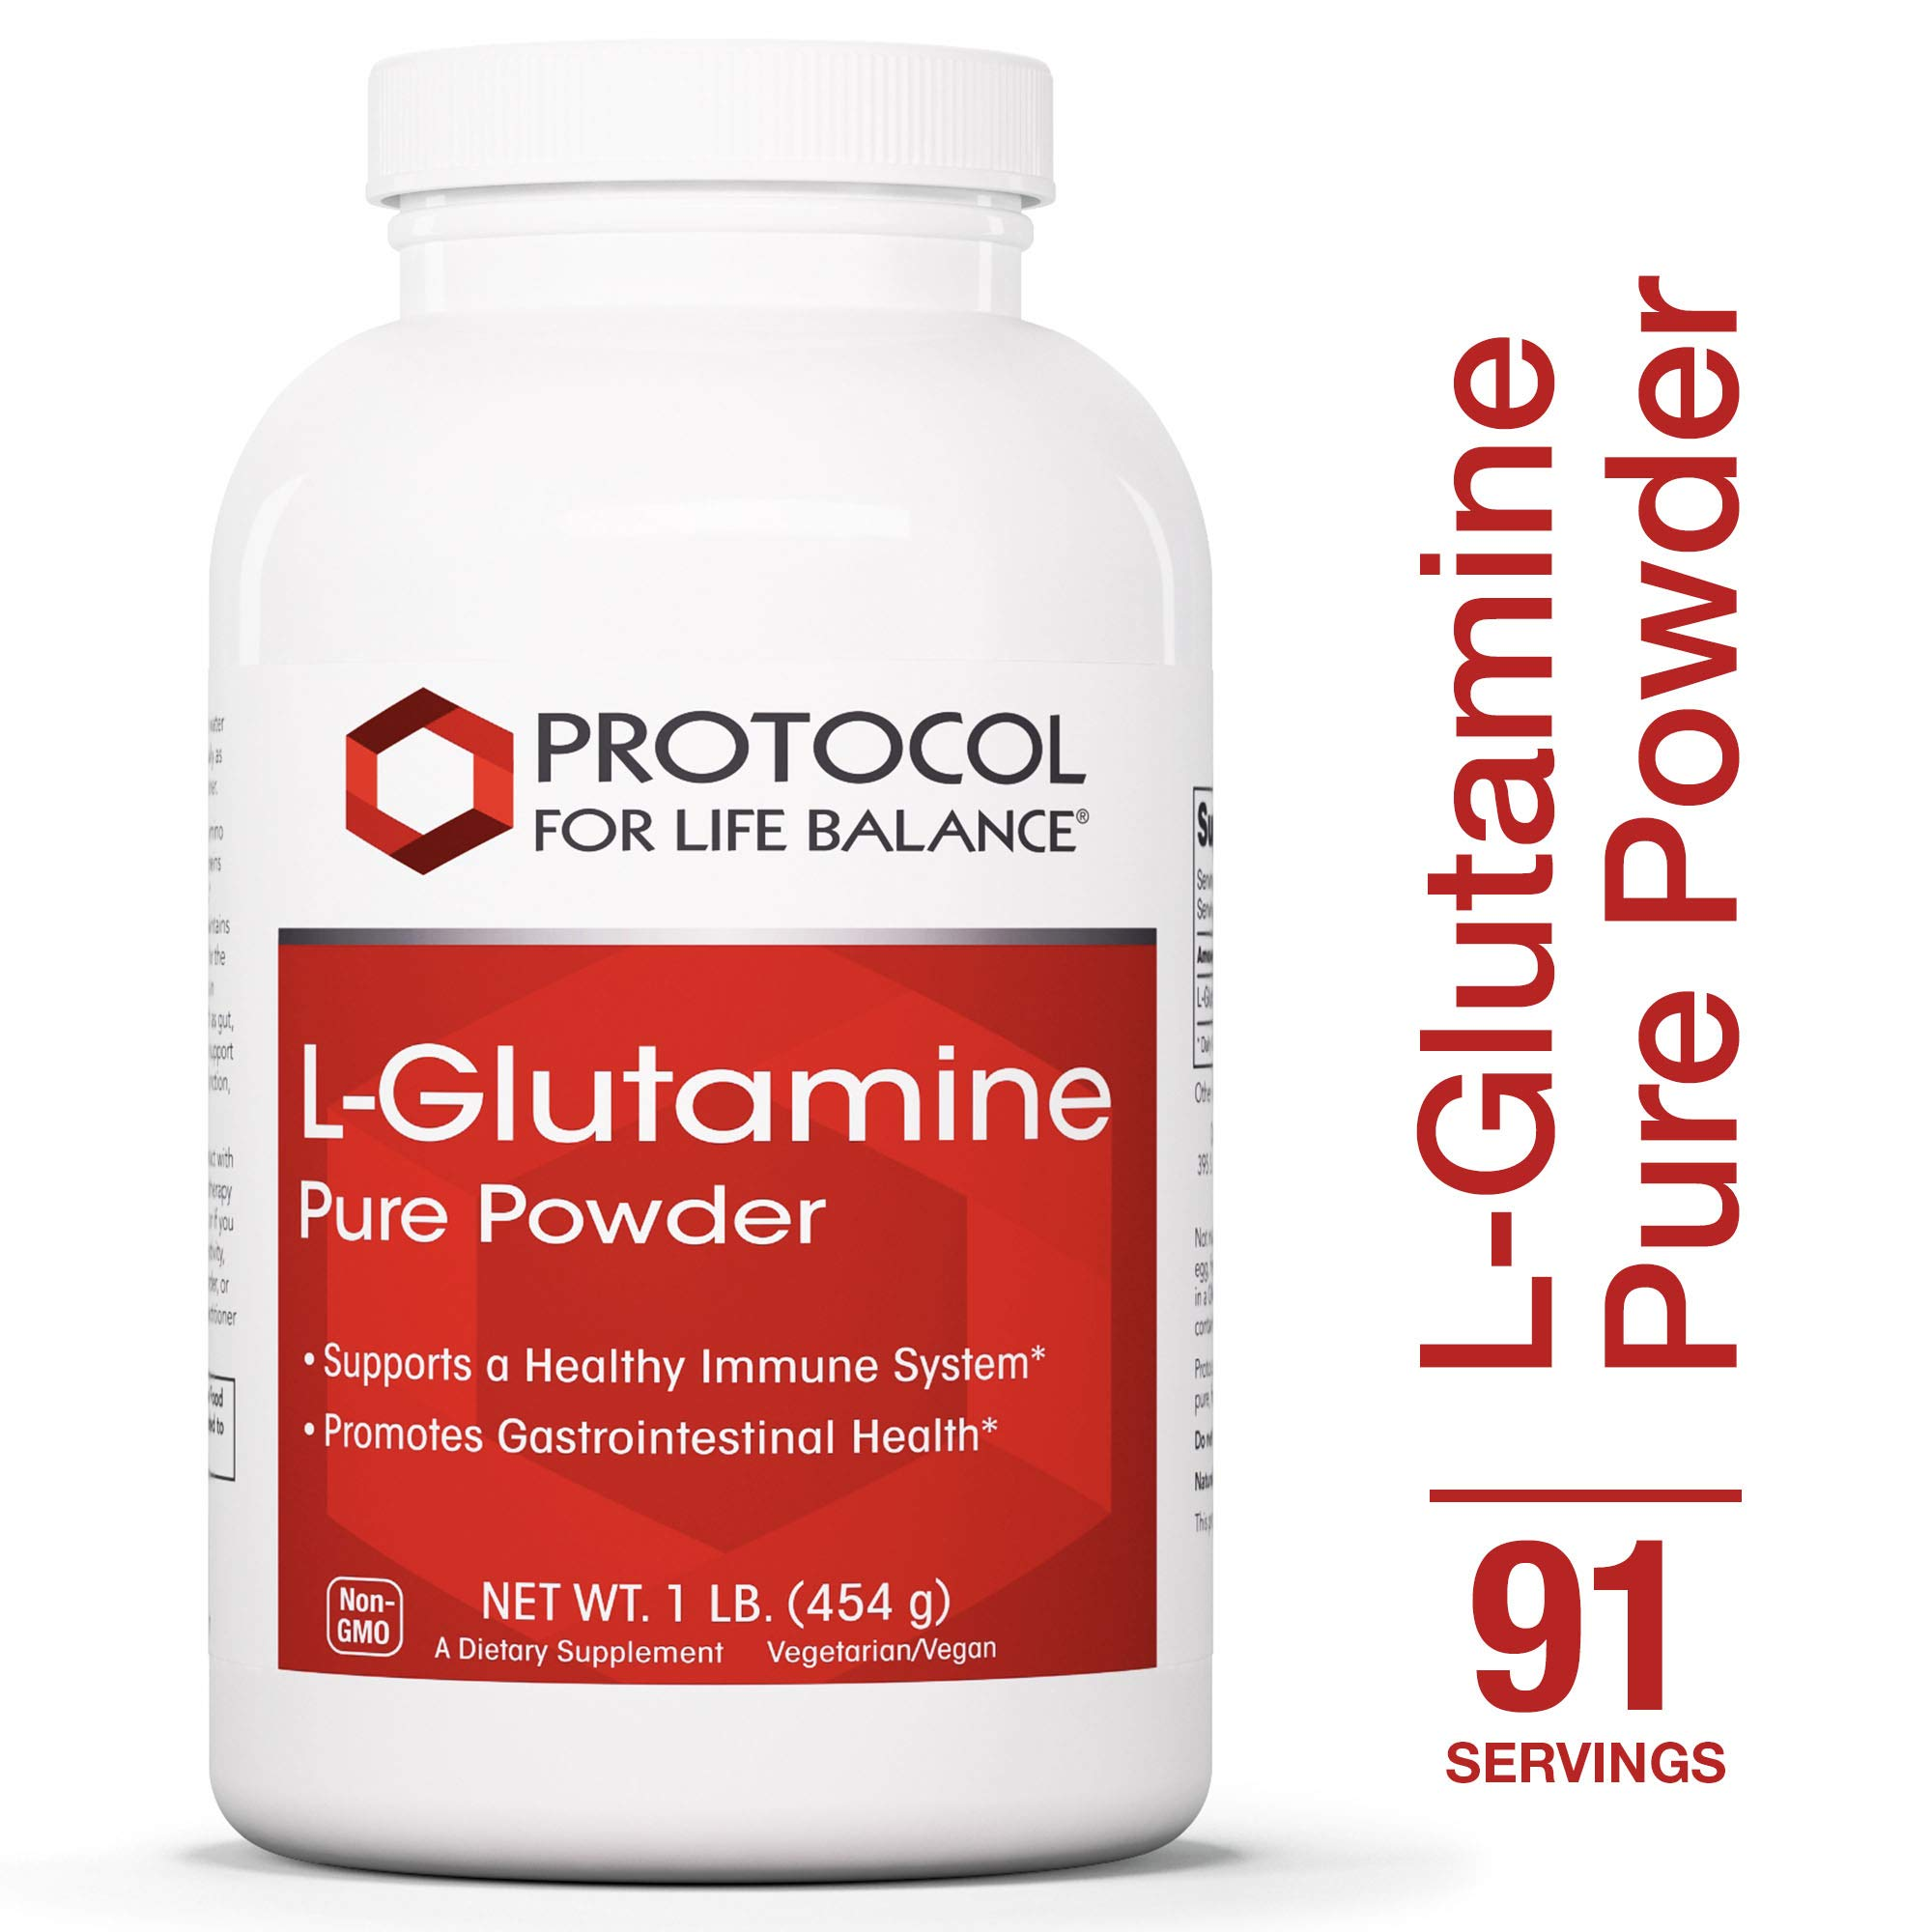 Protocol For Life Balance - L-Glutamine Pure Powder - Supports Healthy Immune System, Promotes Gastrointestinal Health - 1 Pound